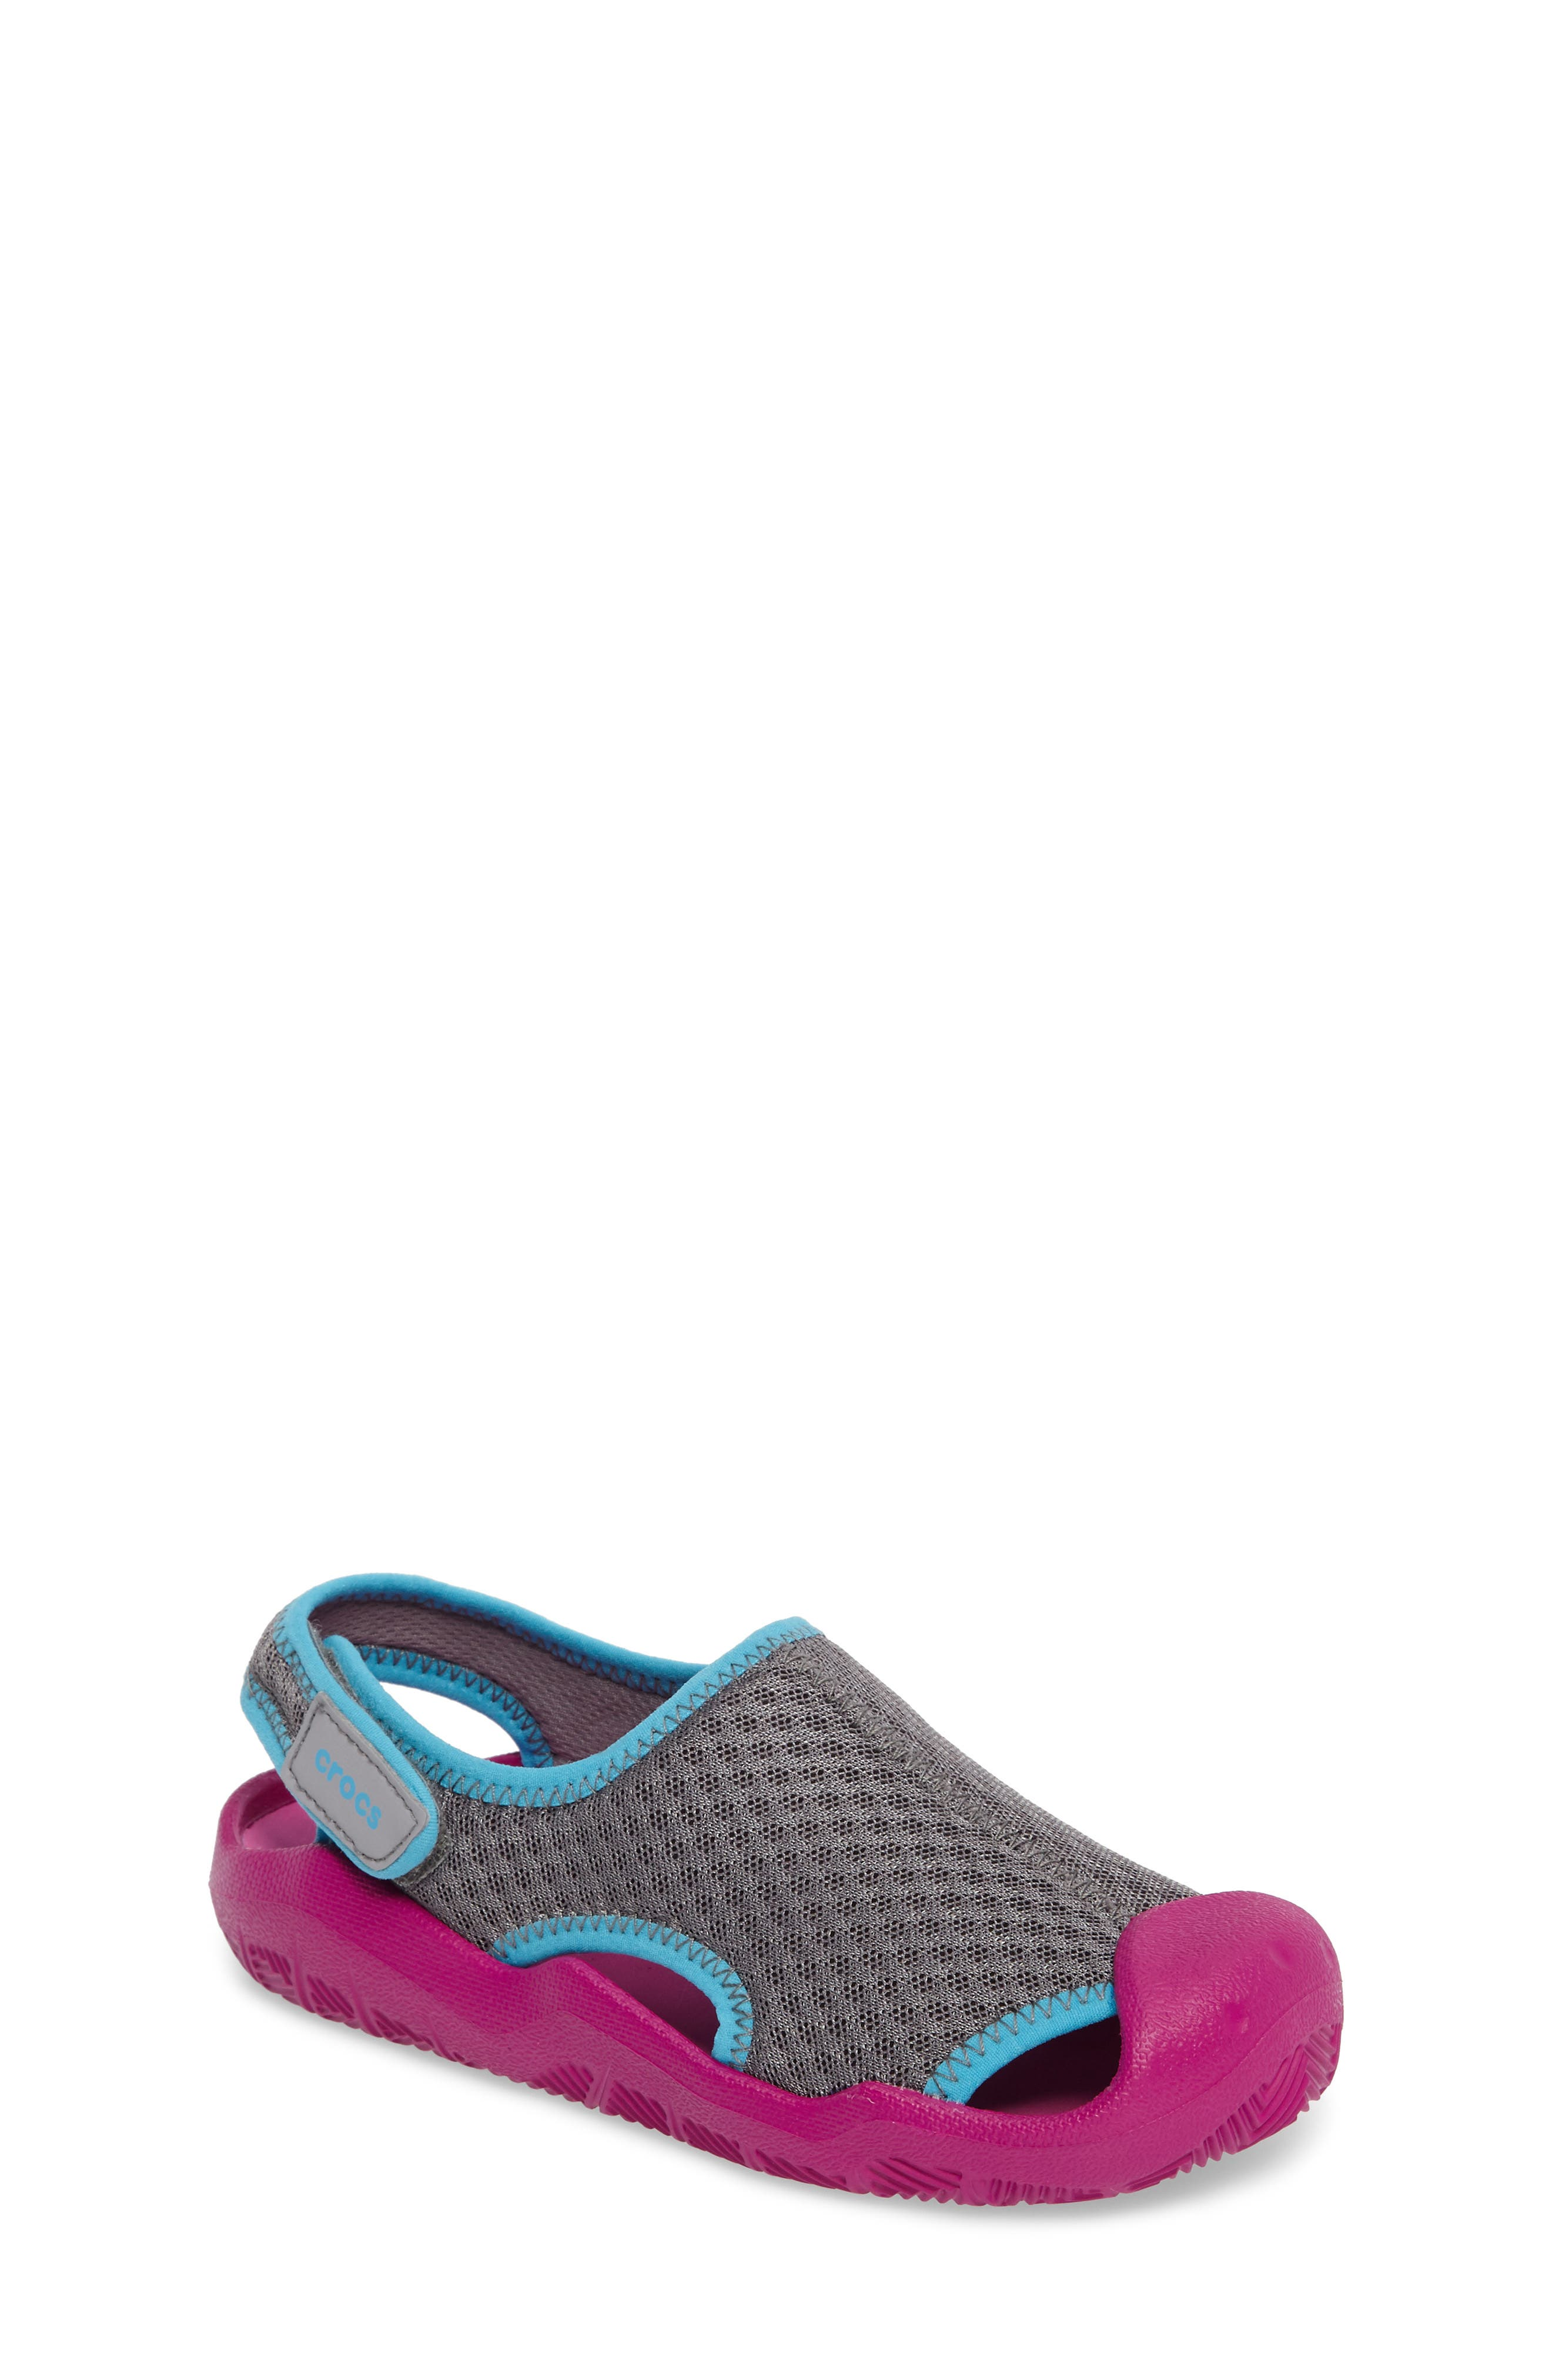 Swiftwater Sandal,                         Main,                         color, 057